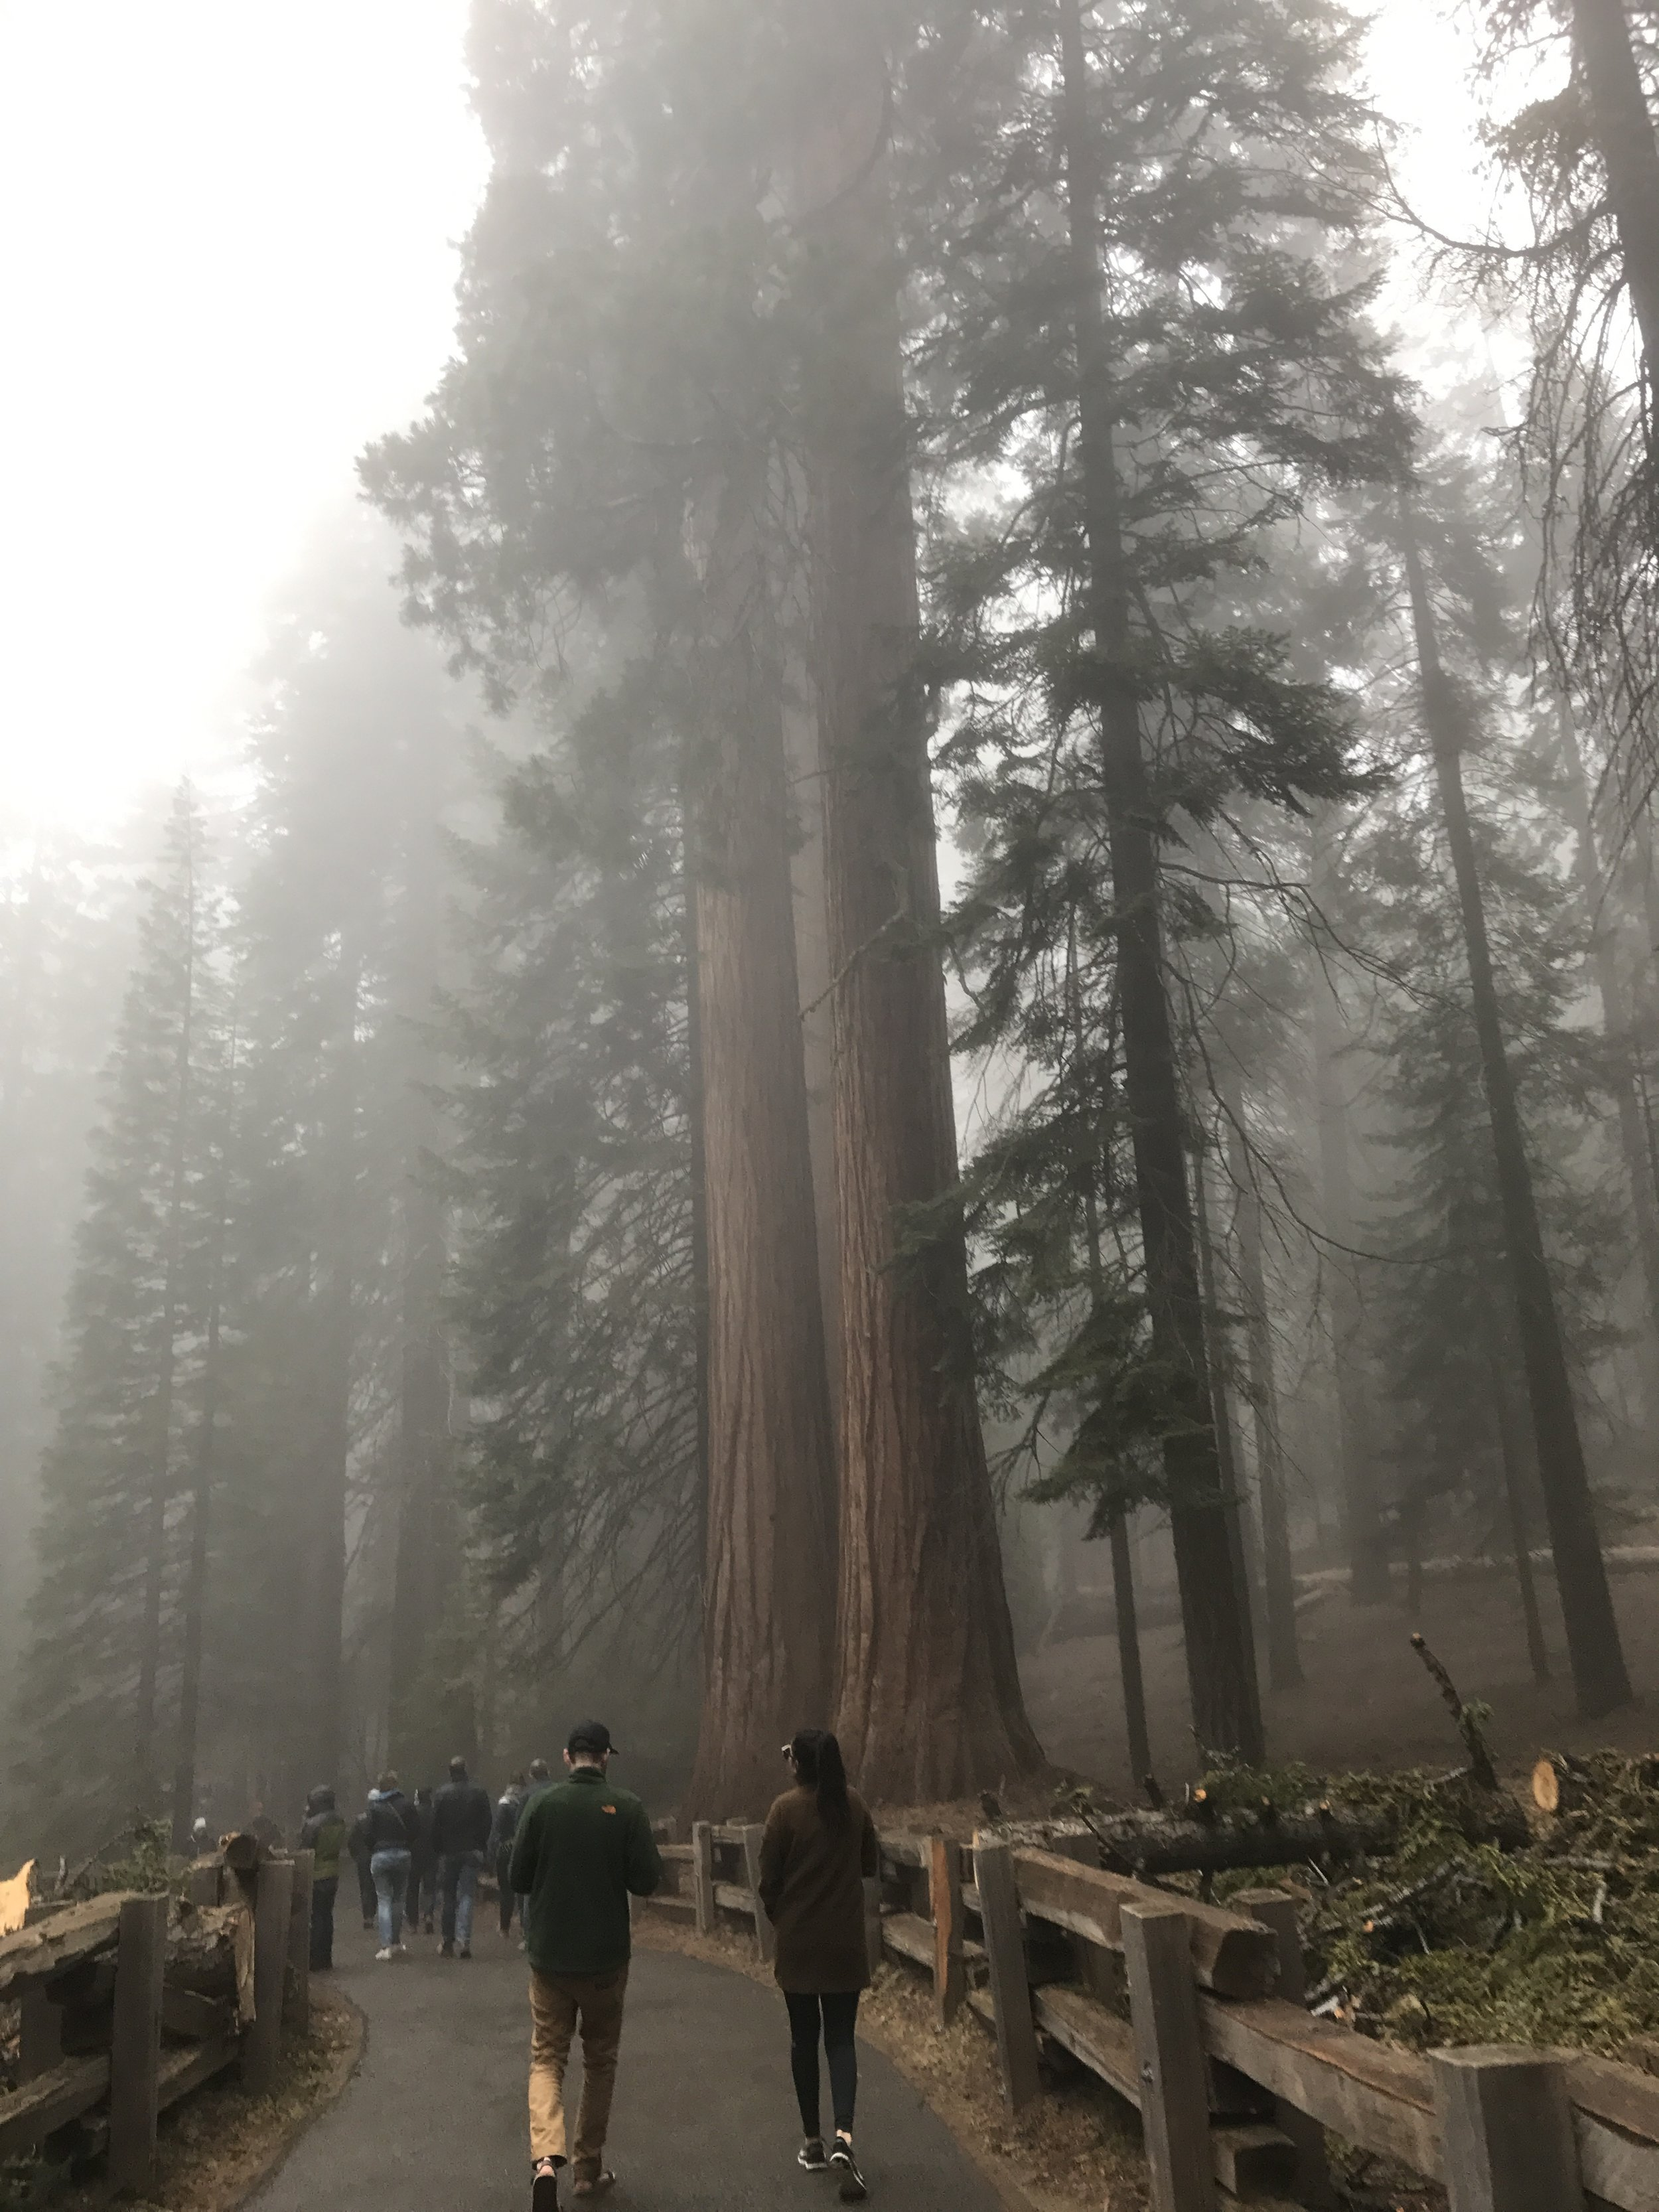 Don't just stop at General Sherman though, the Giant Forest has trails for miles and you can weave in and out of these massive trees. If you visit sister park Kings Canyon National Park you can visit similar (but less crowded groves!)